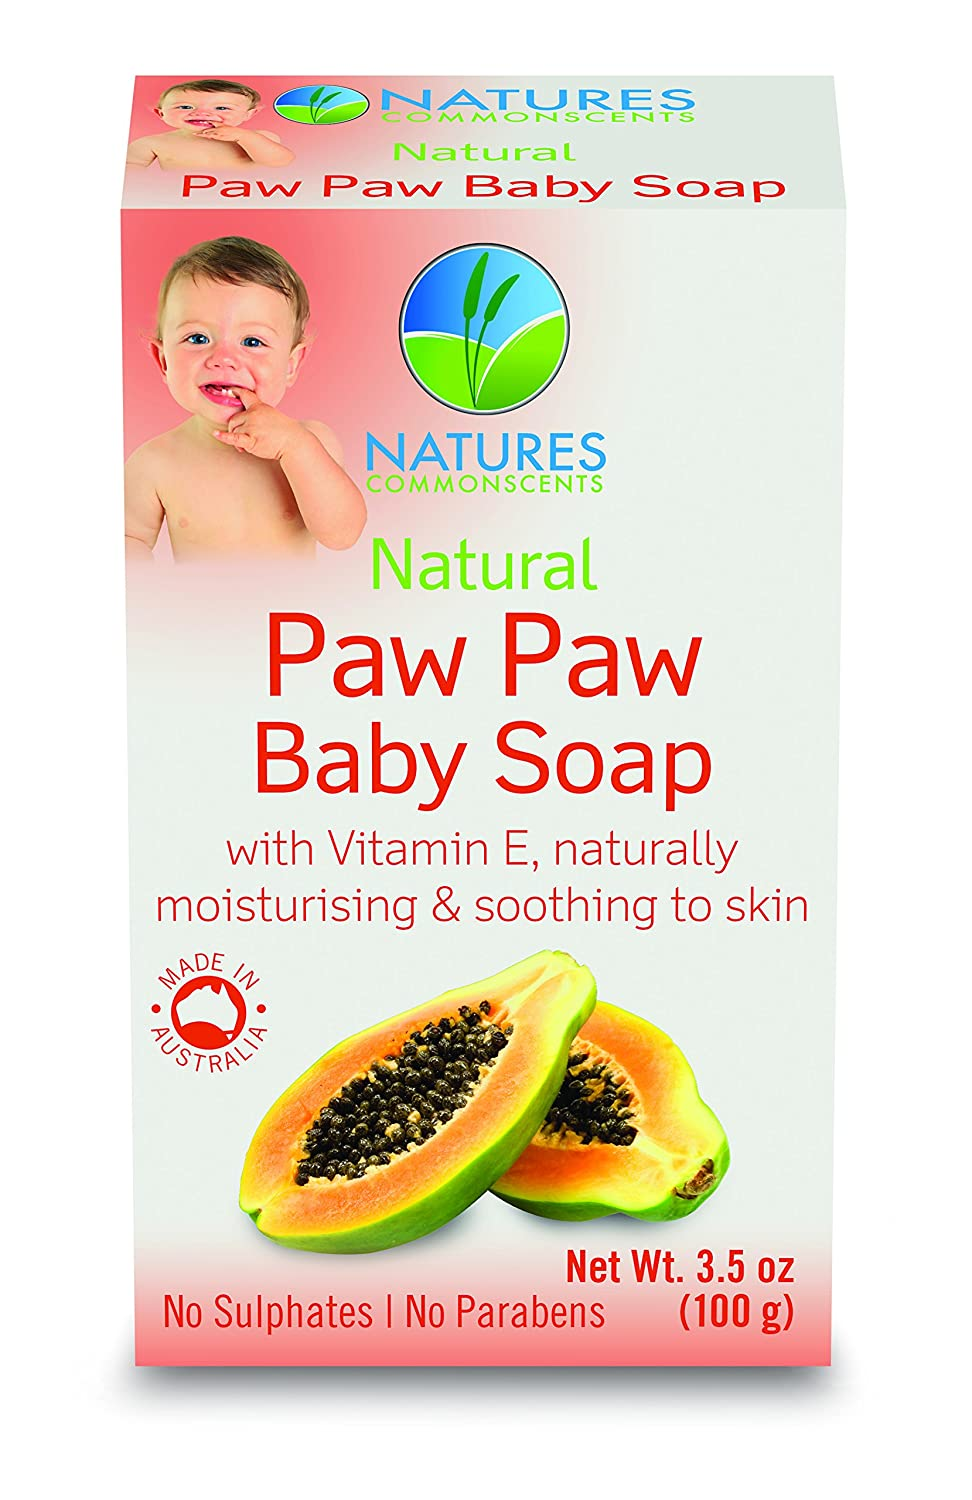 Natures Commonscents Natural Paw Paw Baby Soap Bar With Vitamin E